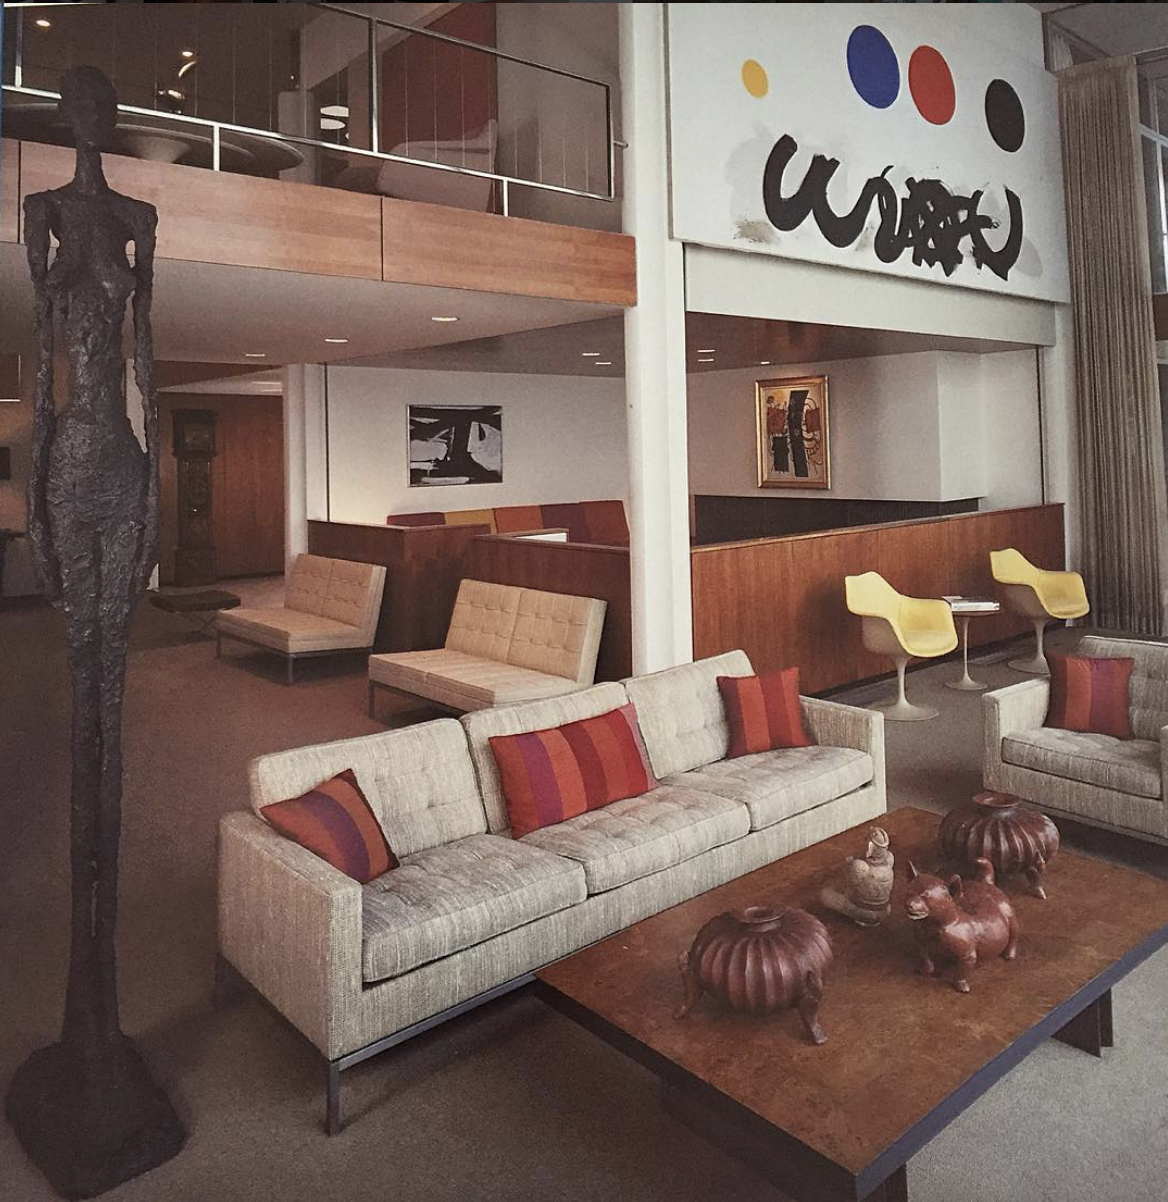 archival photo of modernist home interior